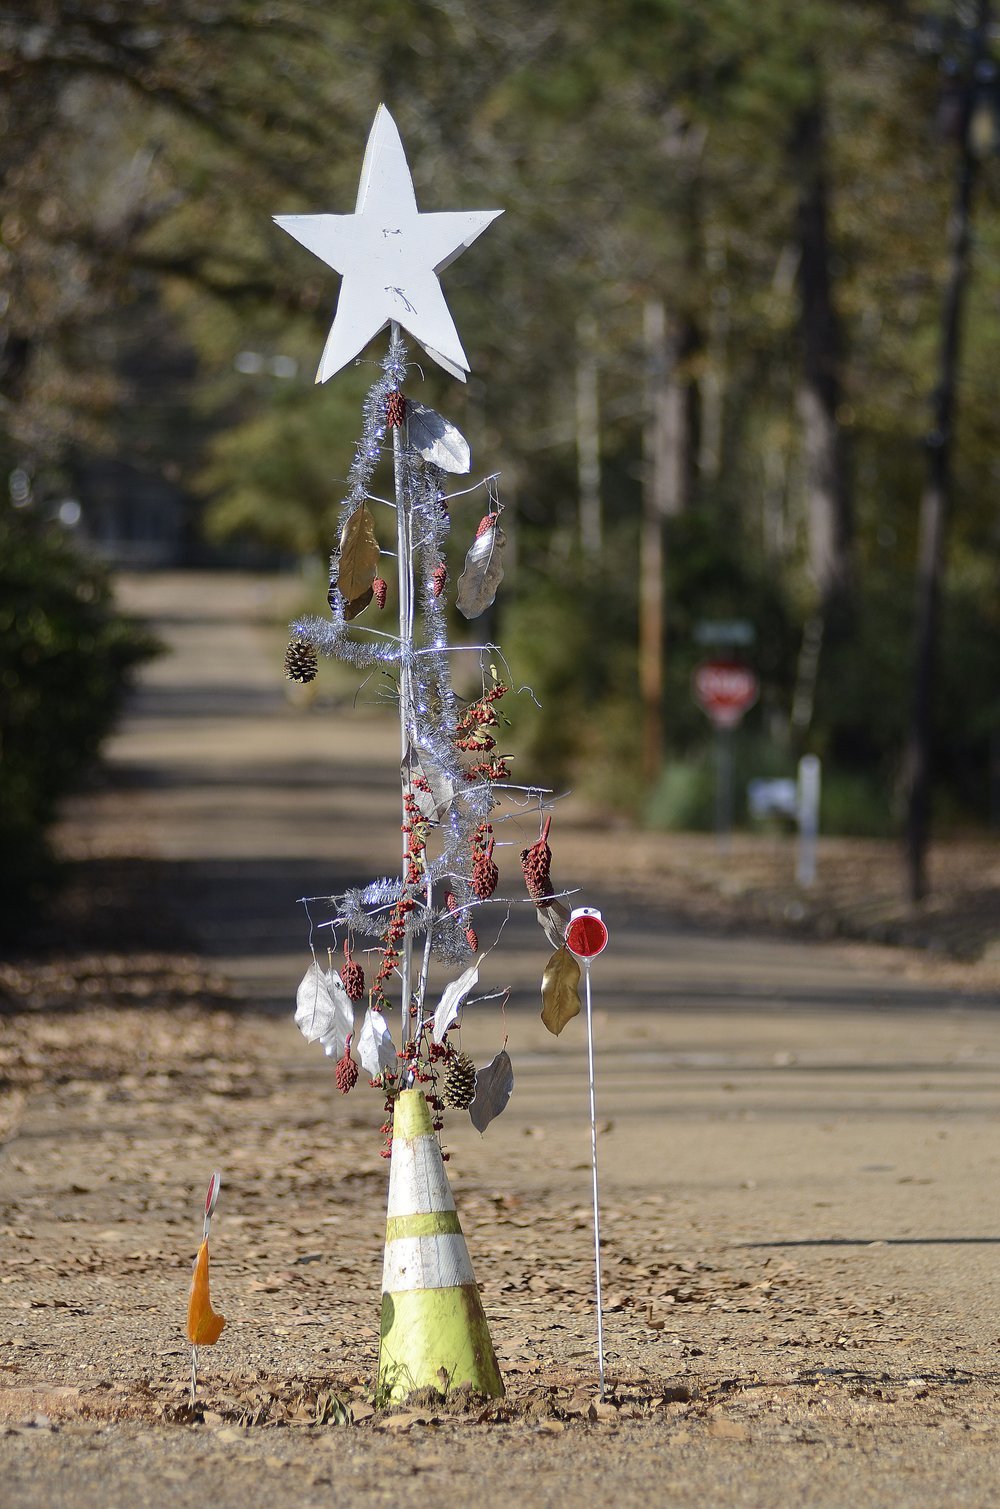 In this Nov. 29, 2019 photo, a decorated road cone stands at a pothole in the Edgewood neighborhood of McComb, Miss. Residents of the Mississippi city are protesting the large pothole in their neighborhood by decorating it with holiday cheer. (Matt Williamson/The Enterprise-Journal via AP)